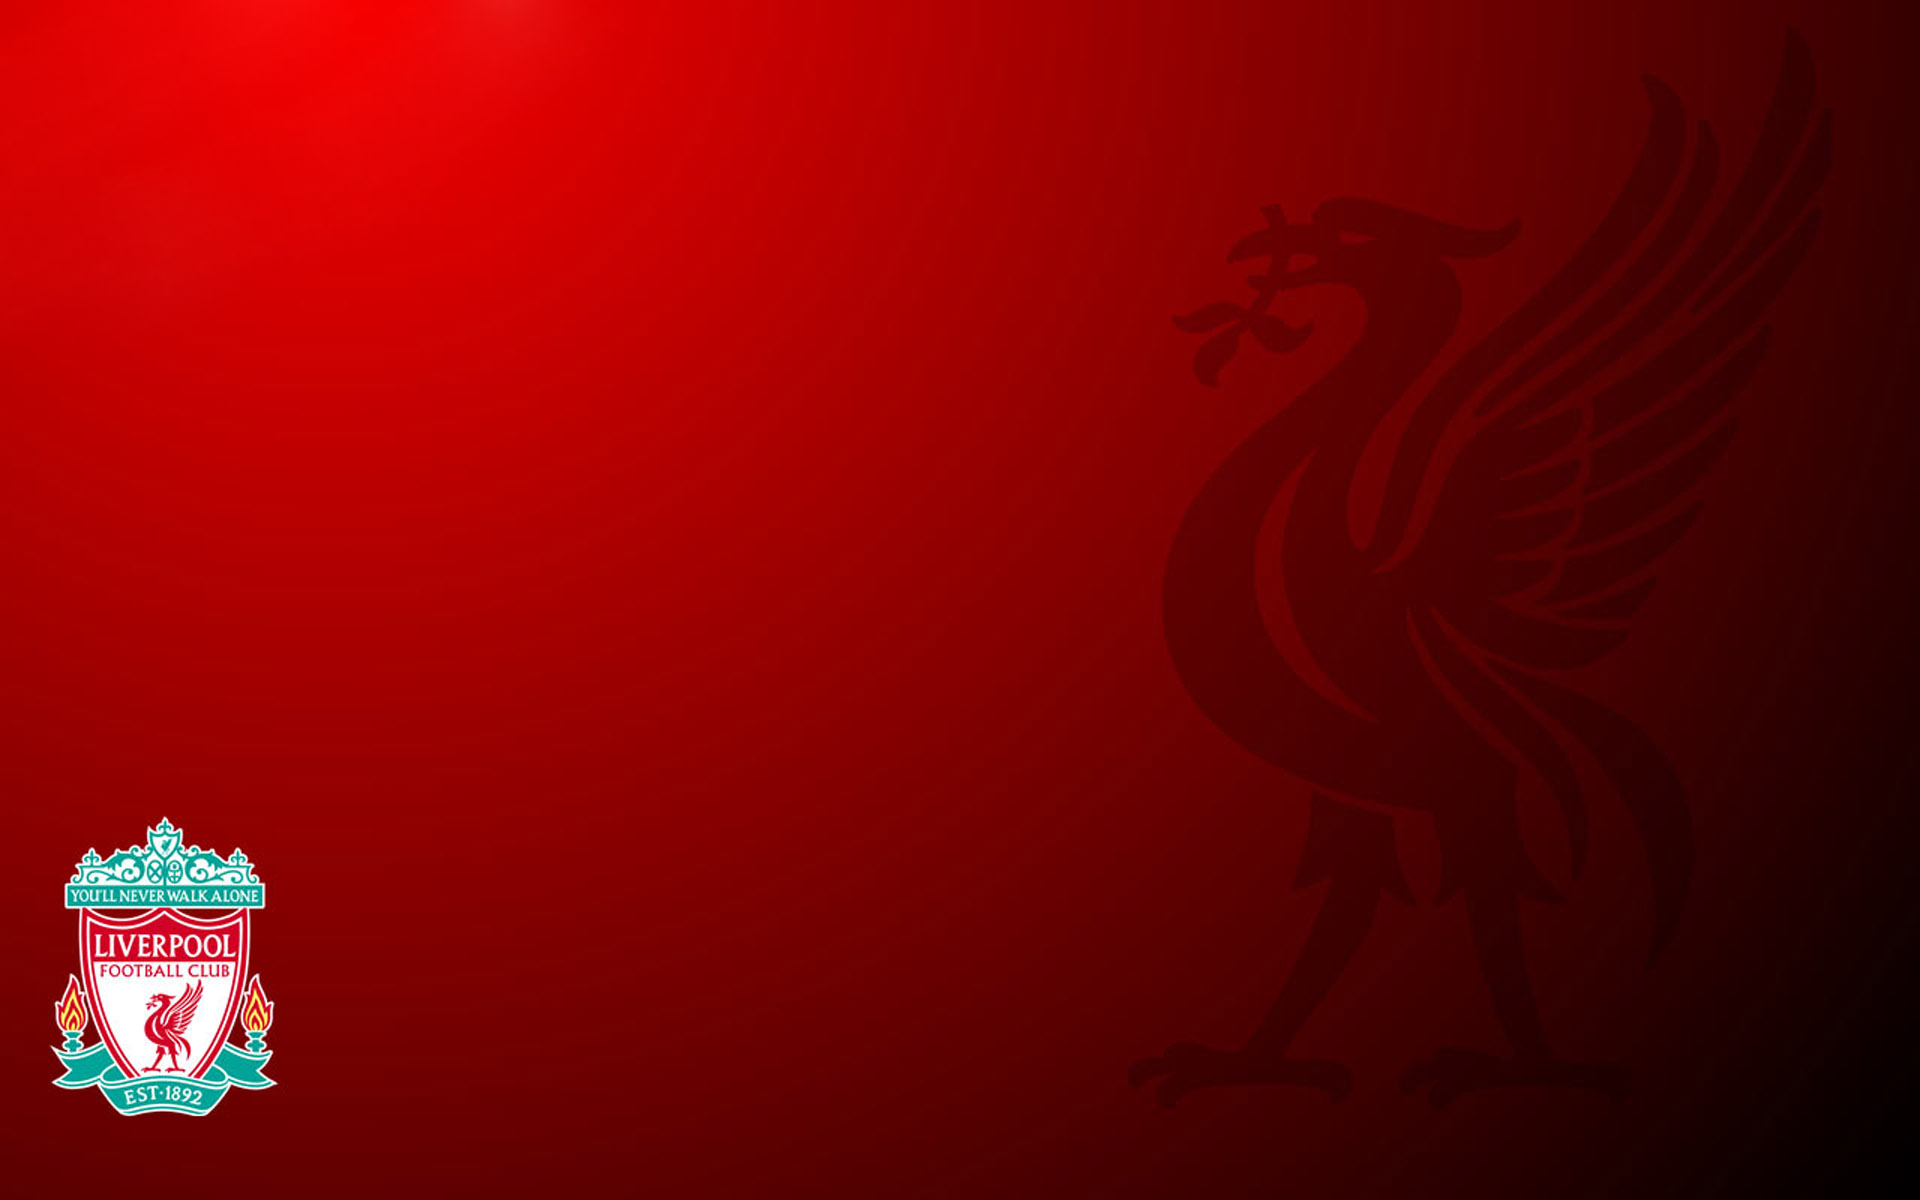 Liverpool Wallpapers HD bird